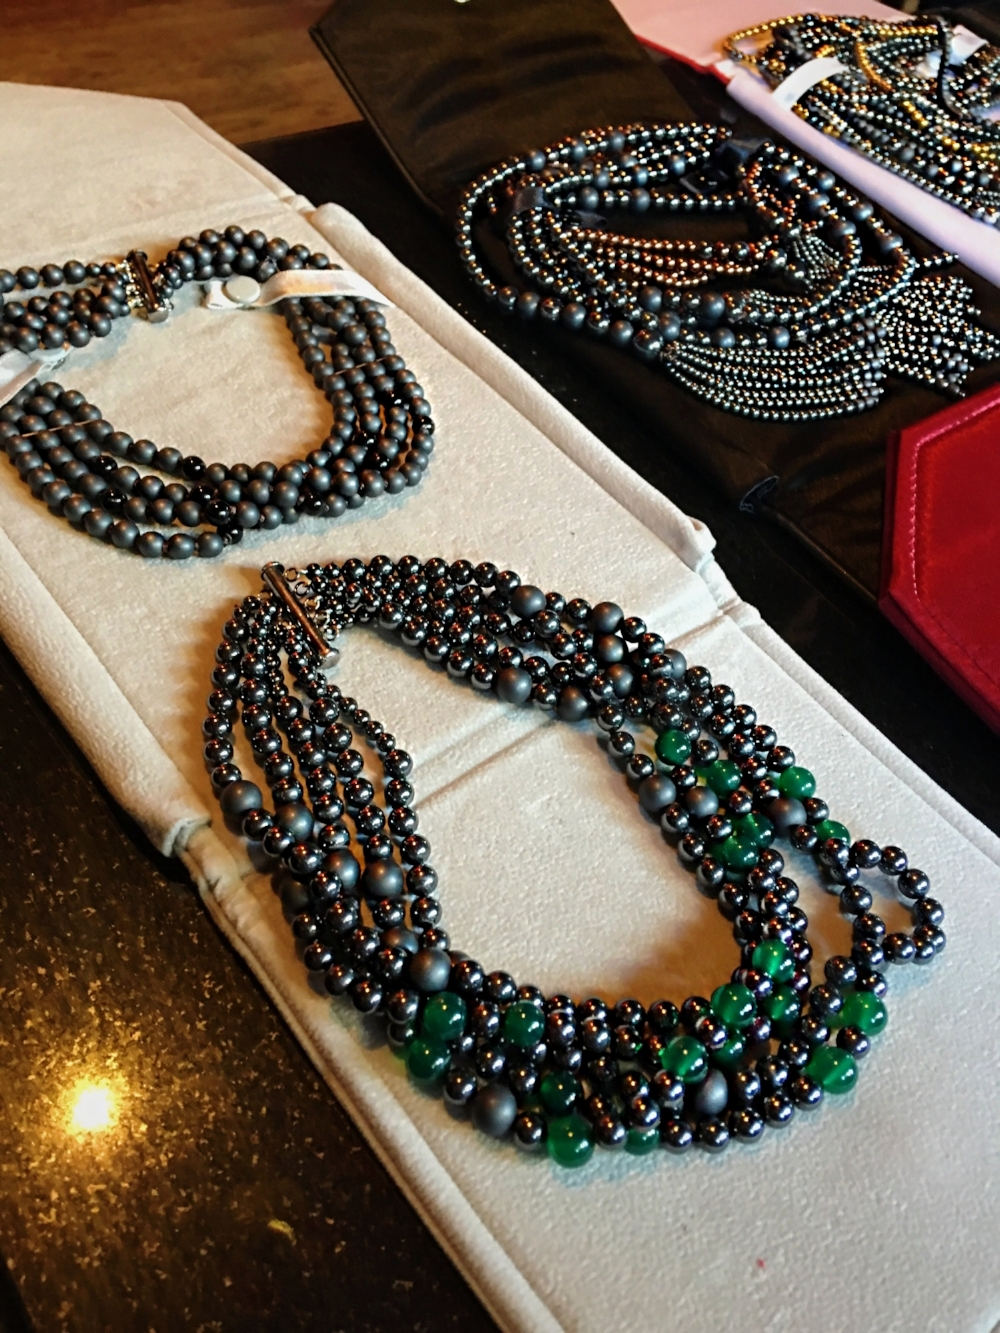 olga parkers jewelry nyfw prive hype app fashion events jewelry collection couture fine jewelry hematite bead matte envy green onyx choker necklace